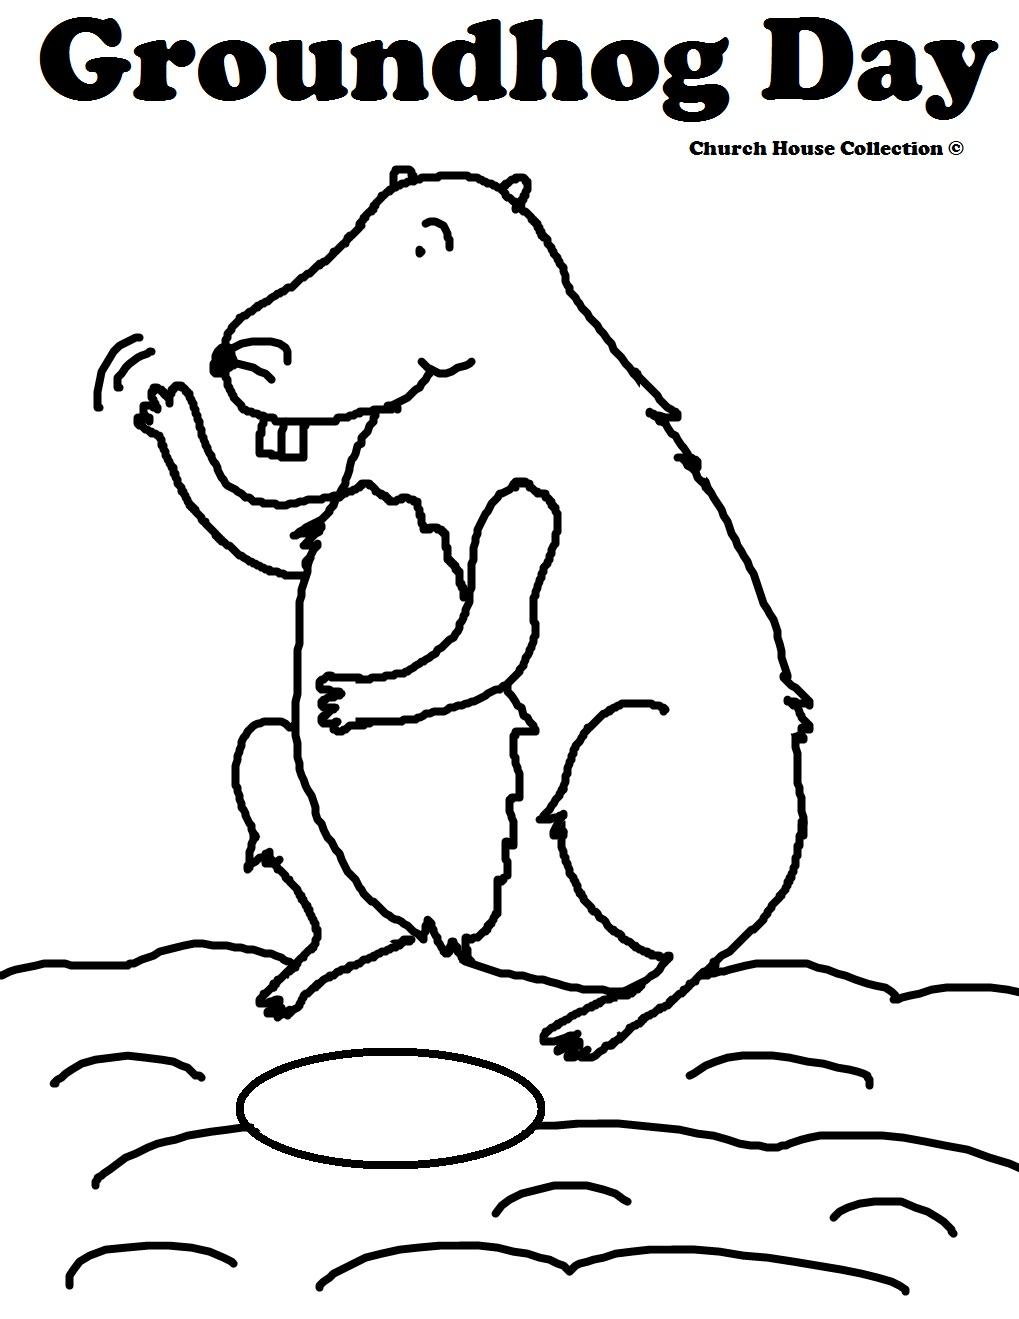 groundhog day coloring pages groundhog waving